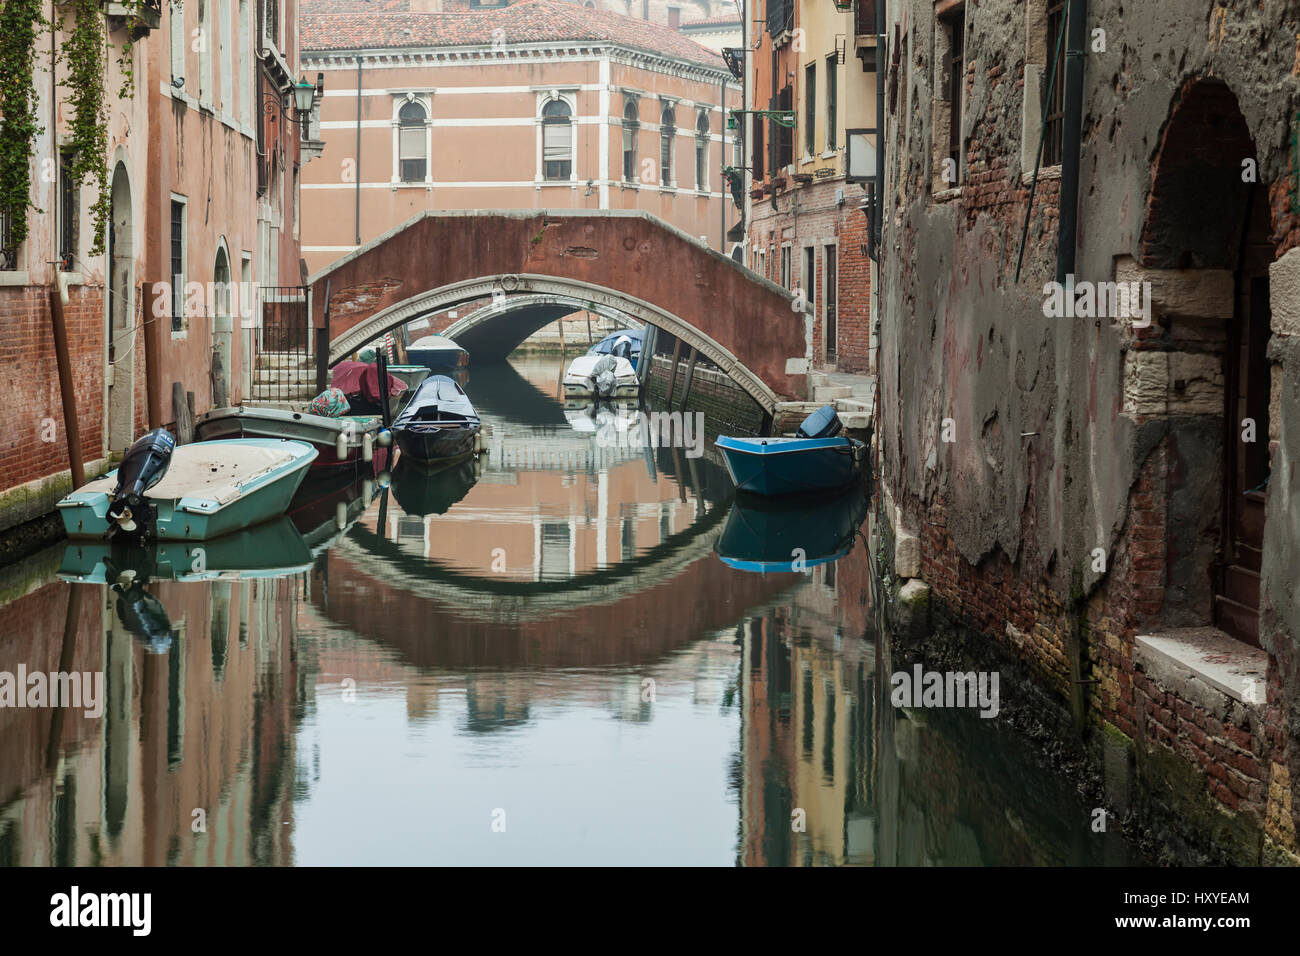 Misty morning on a canal in sestiere of San Marco, Venice, Italy. - Stock Image